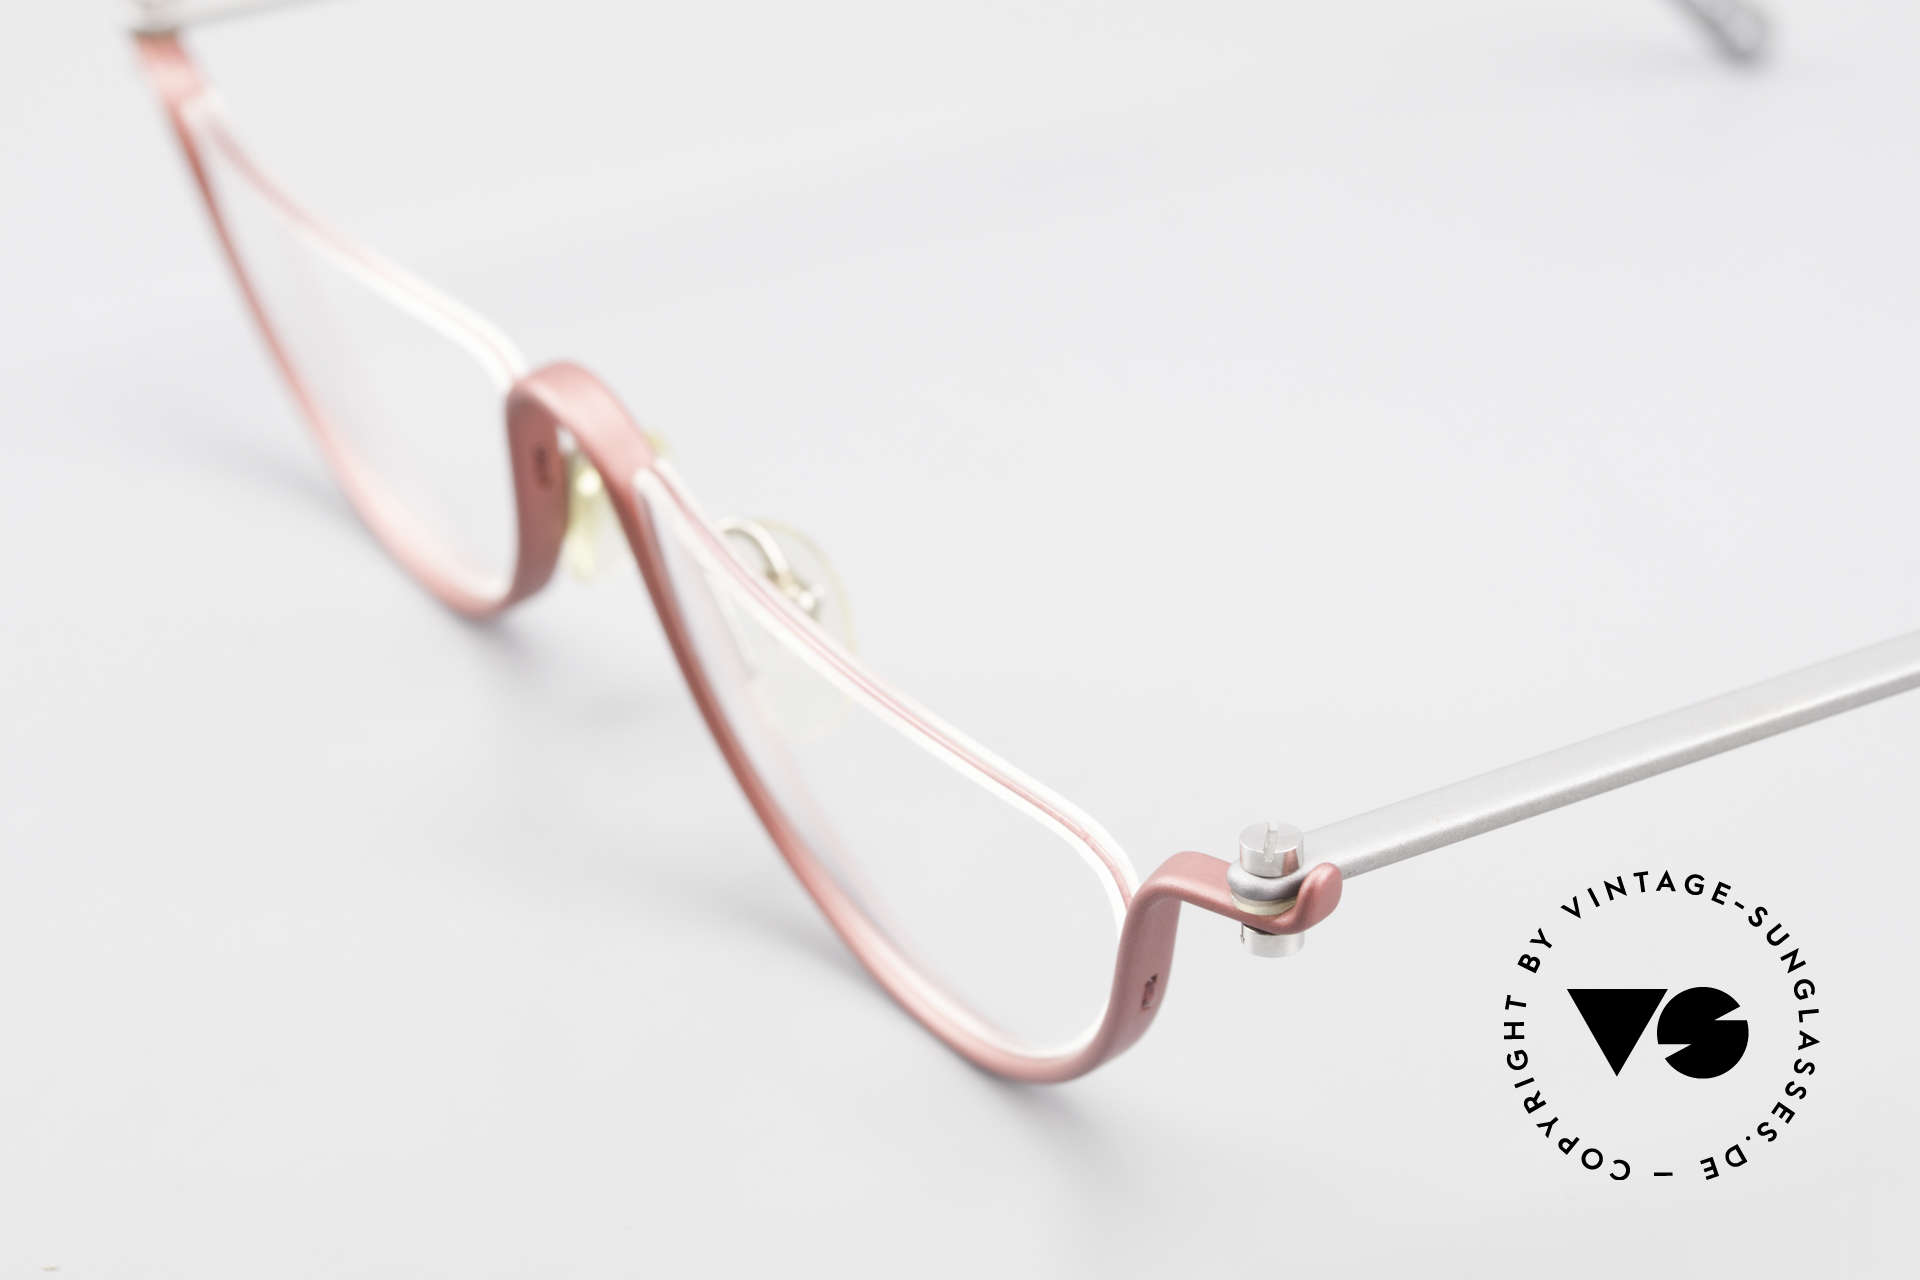 ProDesign No11 Gail Spence Design Eyeglasses, N°ONE worn in the movie 'The Hunt For Red October', Made for Women